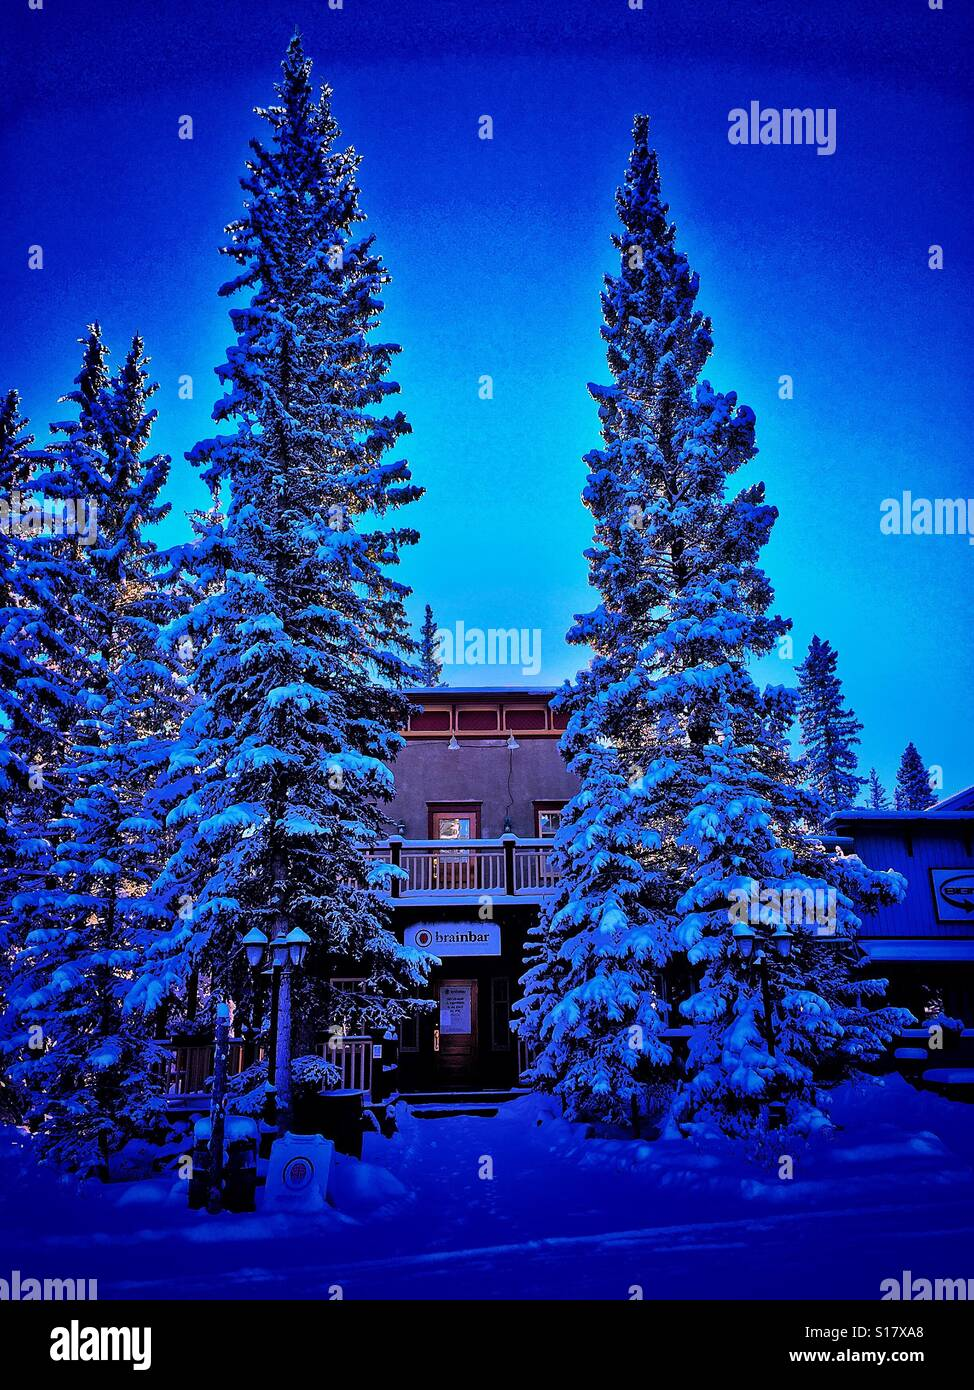 Village of Bragg Creek strip mall surrounded by snow covered evergreens - Stock Image